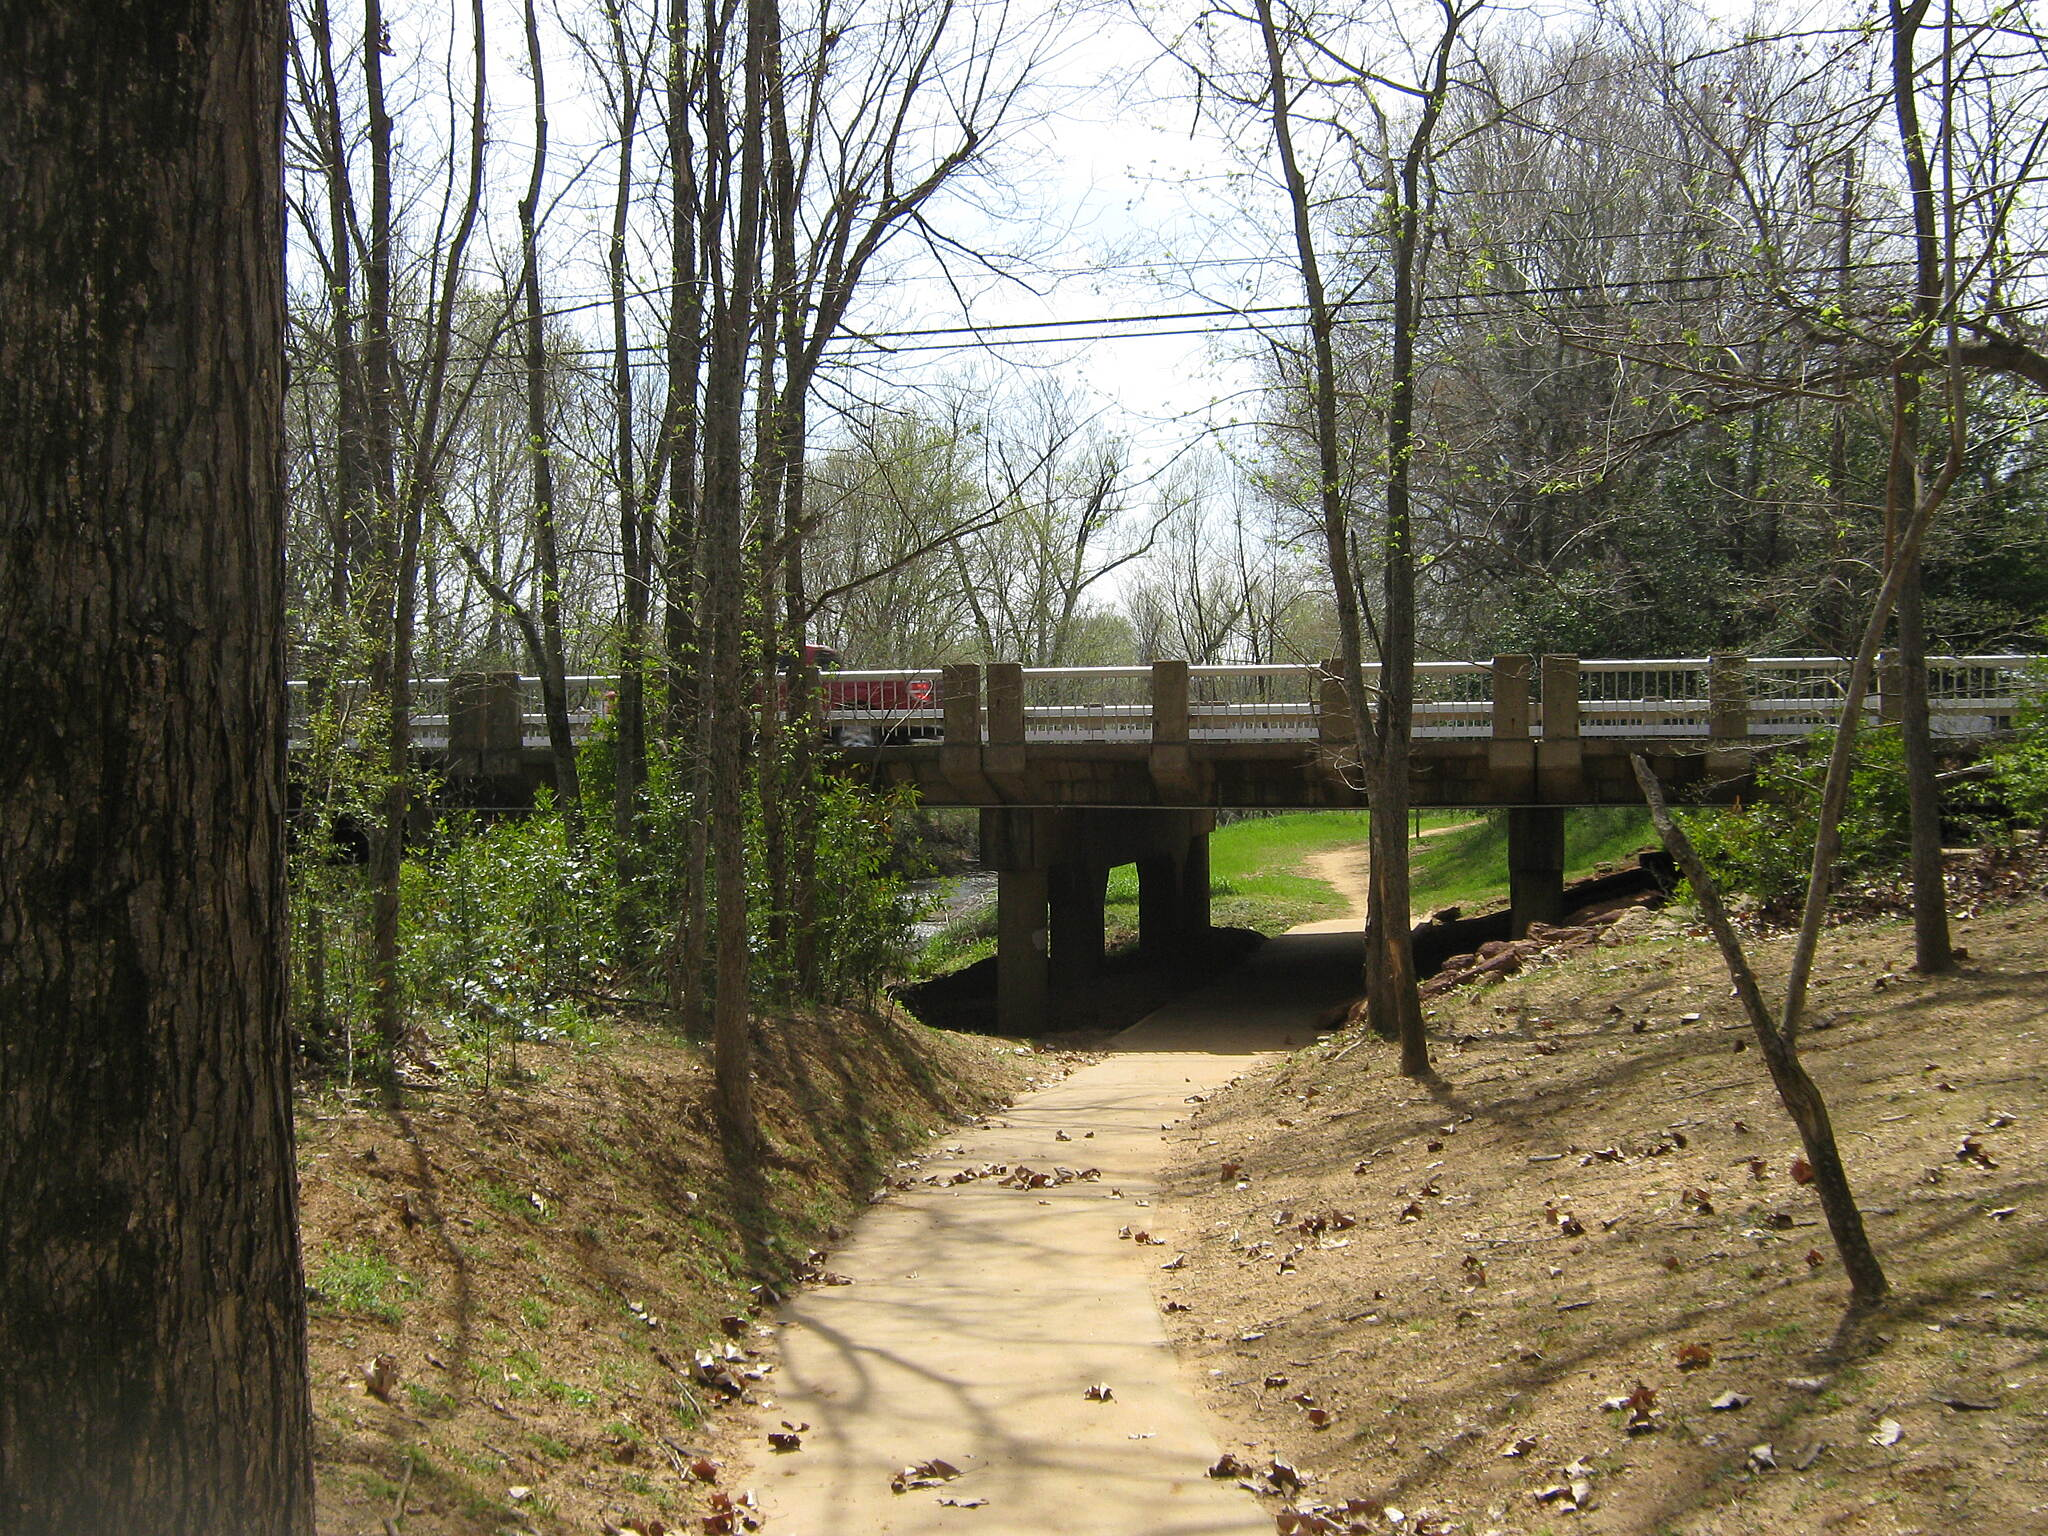 Lanana Creek Trail La Nana Creek Trail Under the bridge and close to the creek.